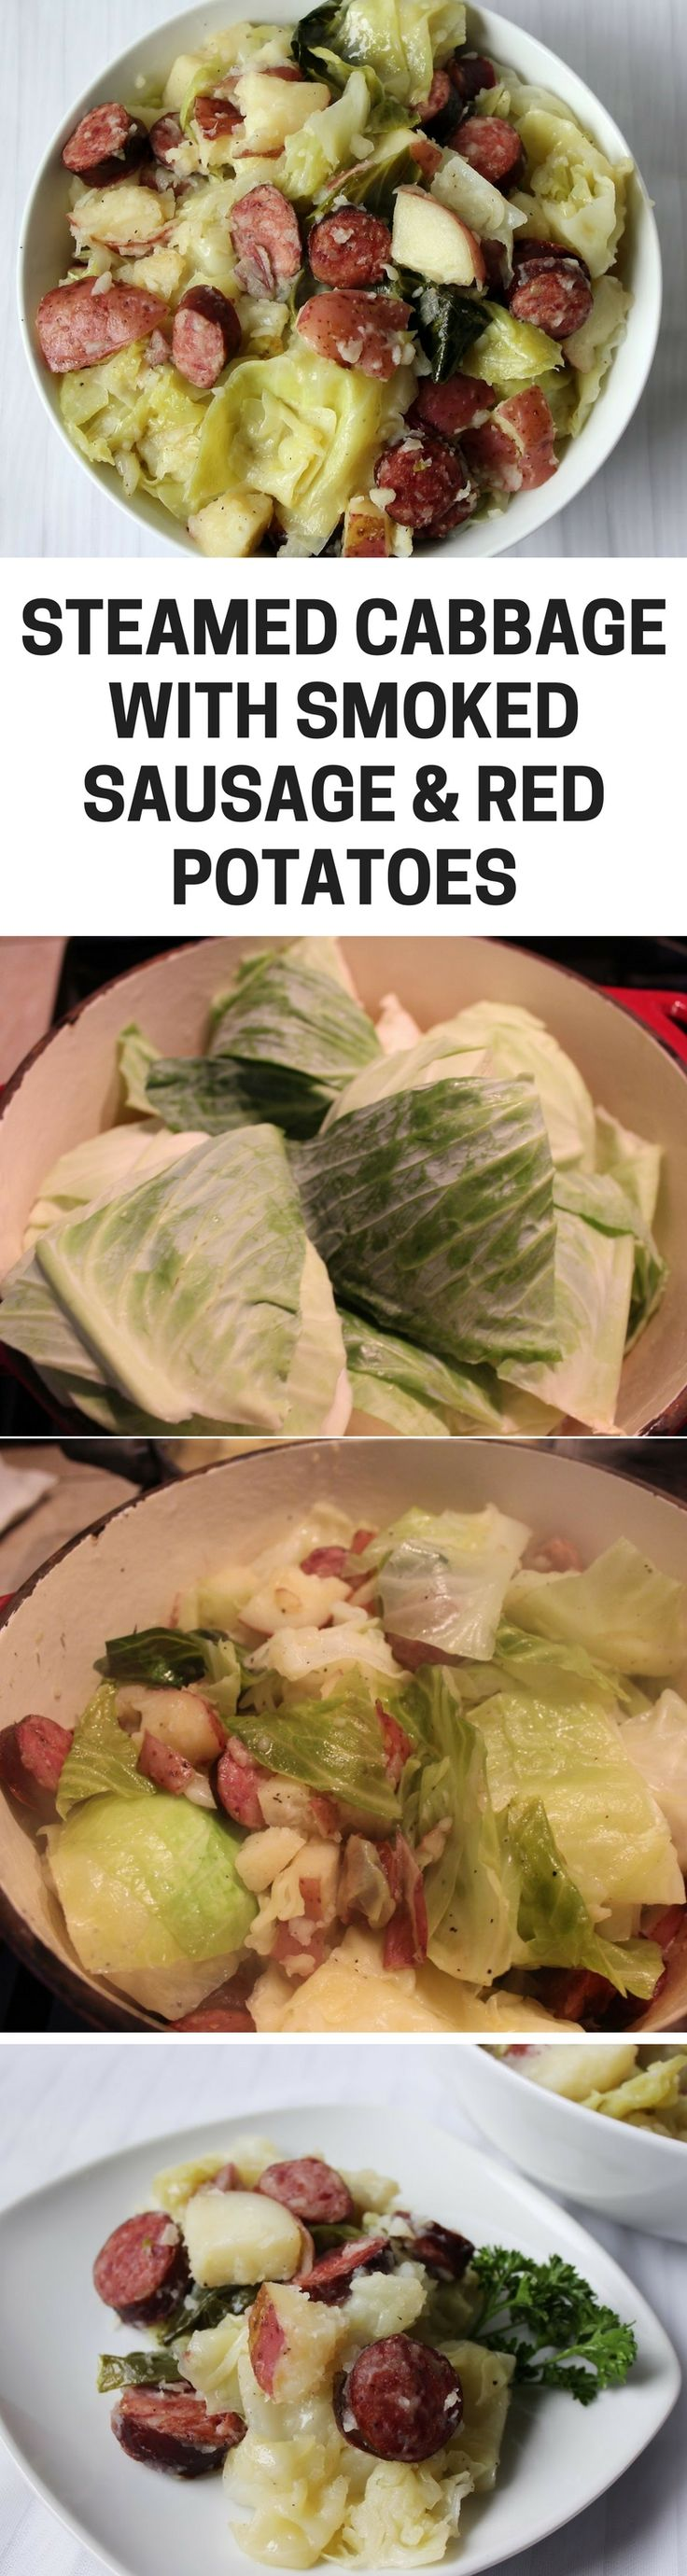 This cabbage recipe is seriously delicious. The sausage brings the recipe to a whole new level adding a fabulous smokey flavor. The starch from the potatoes adds great texture.